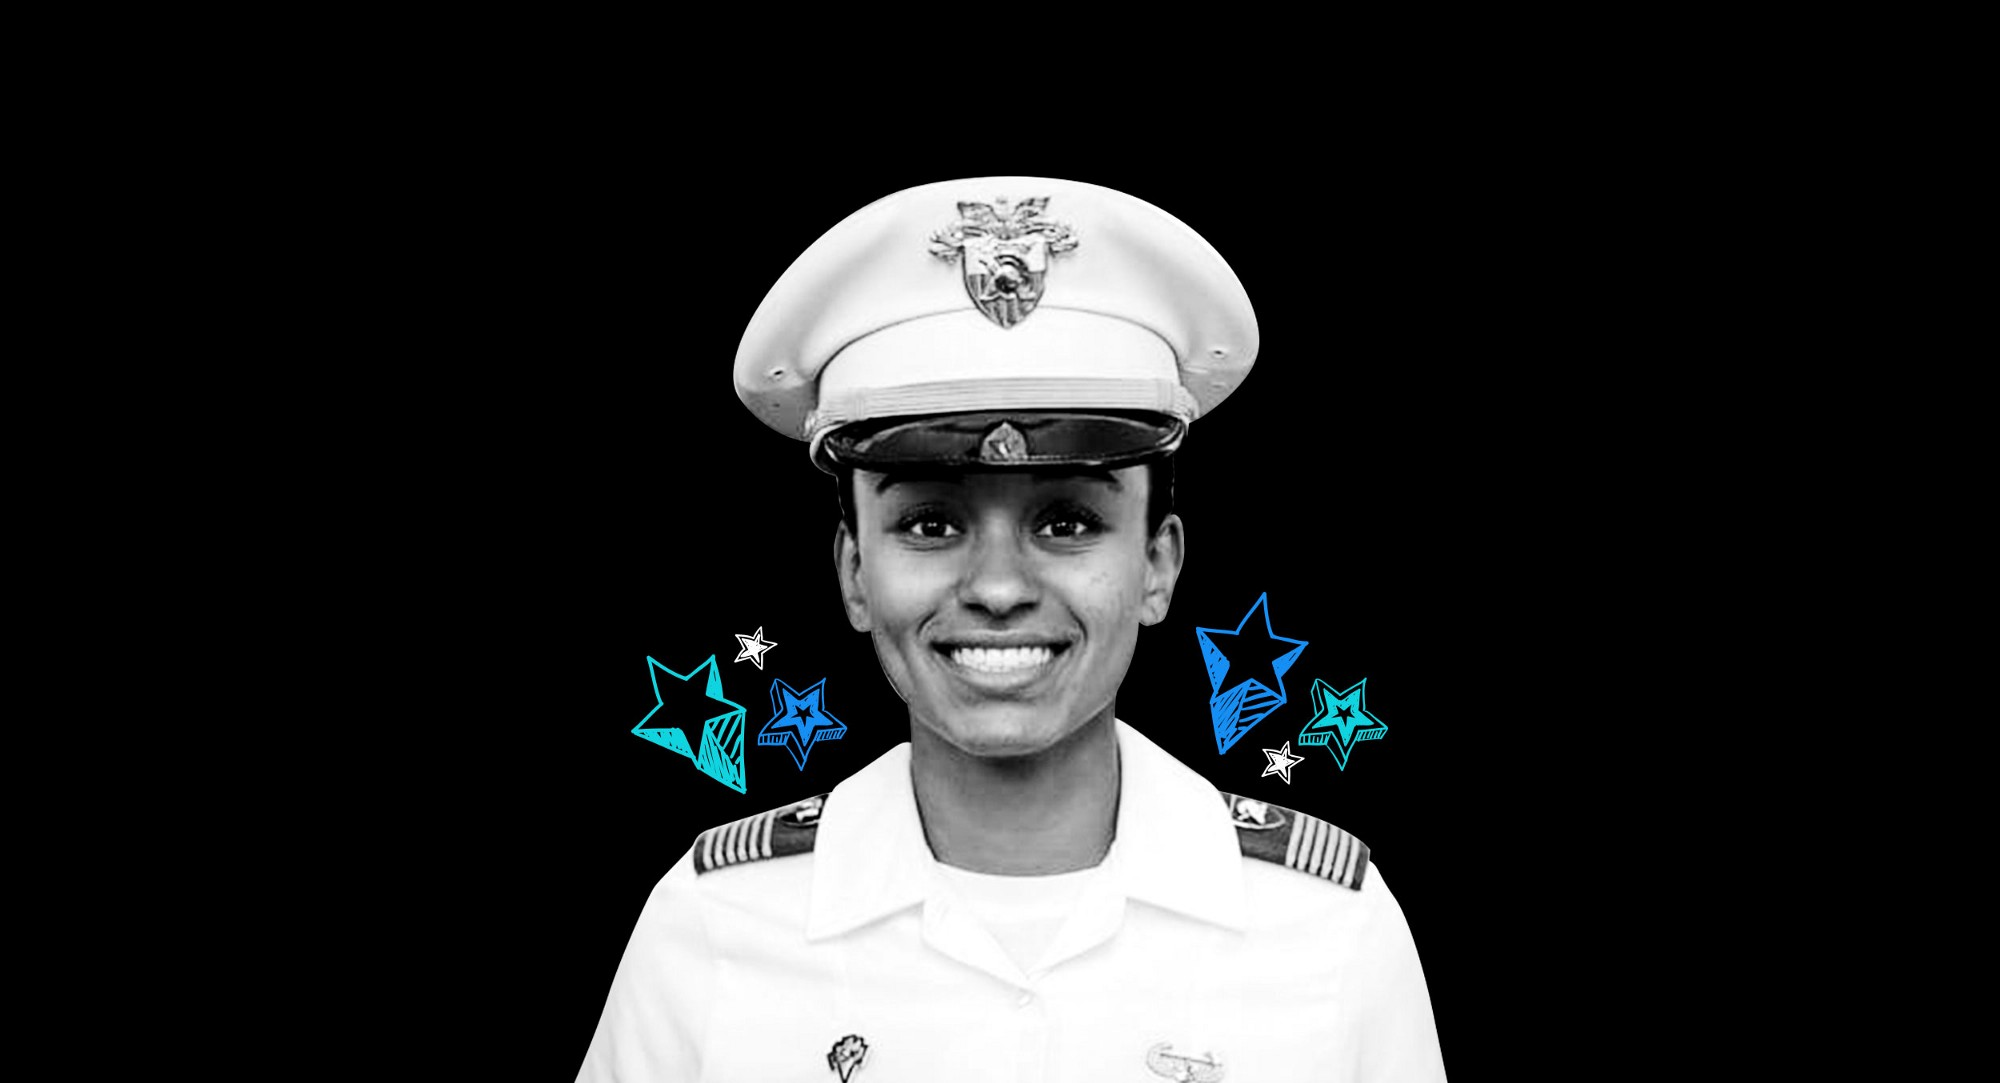 Simone Askew is making history as the first black woman to lead West Point's Corps of Cadets